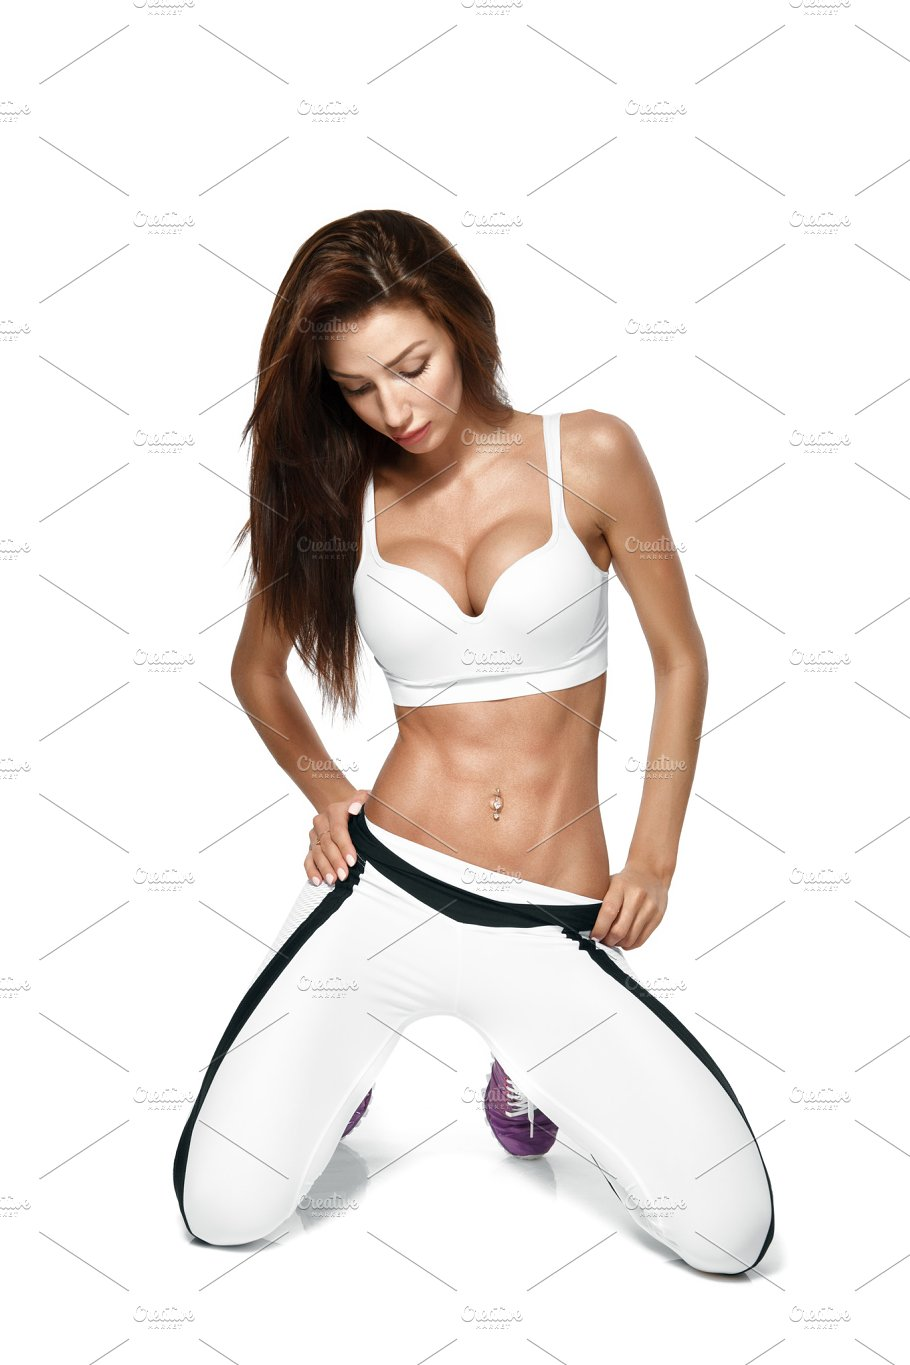 b4355222b4824 Fit and sporty beautiful woman with perfect shape ~ People Images ...